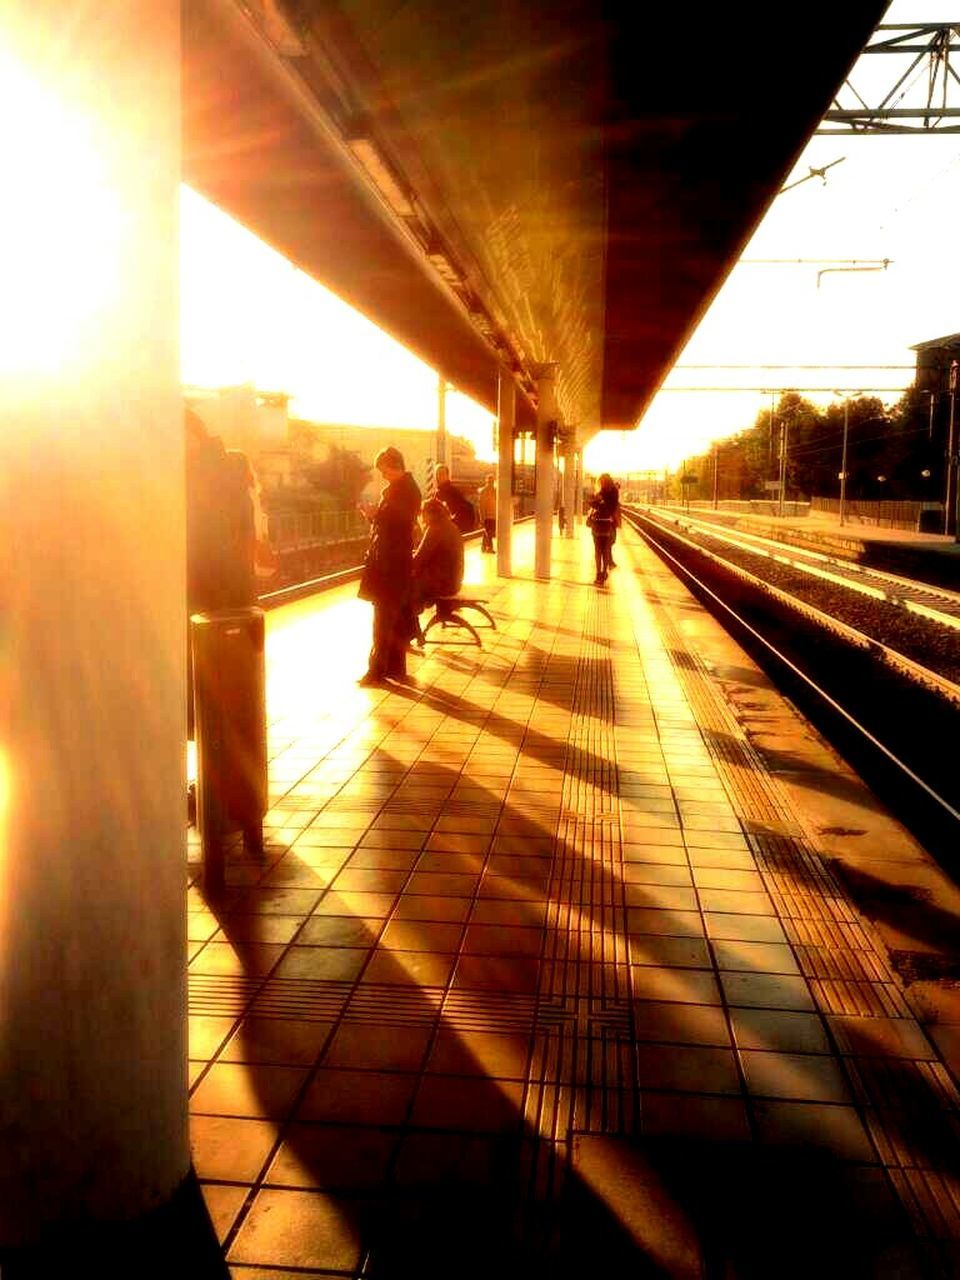 transportation, sunlight, real people, railroad station, railroad station platform, railroad track, public transportation, men, rail transportation, lifestyles, built structure, shadow, commuter, indoors, women, architecture, day, illuminated, city, people, adult